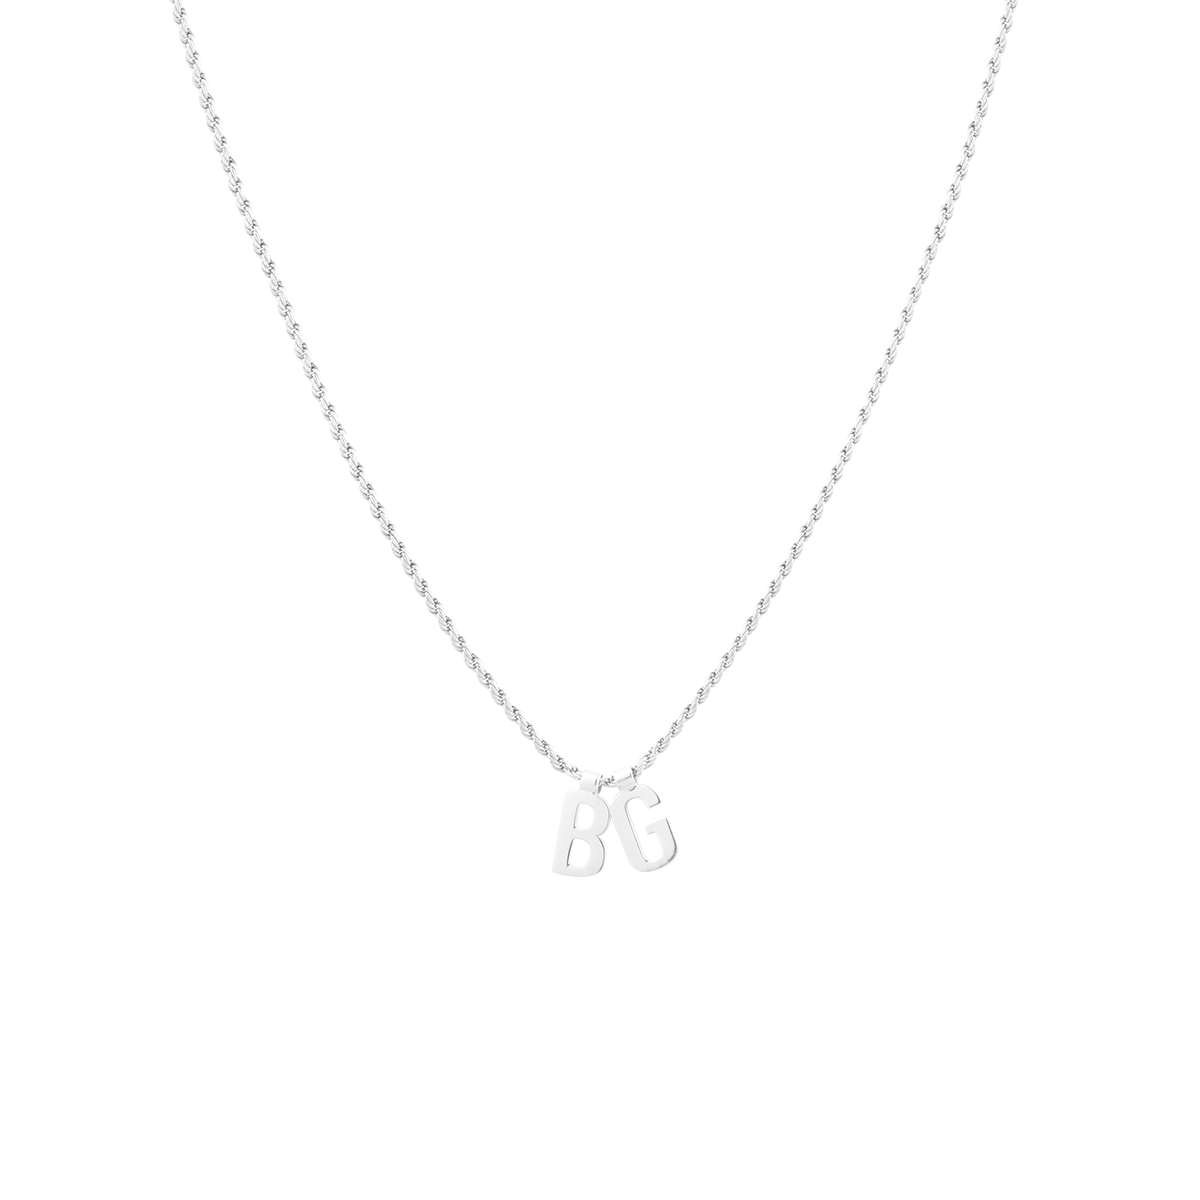 Ruby Rope Letter Necklace zilver BG